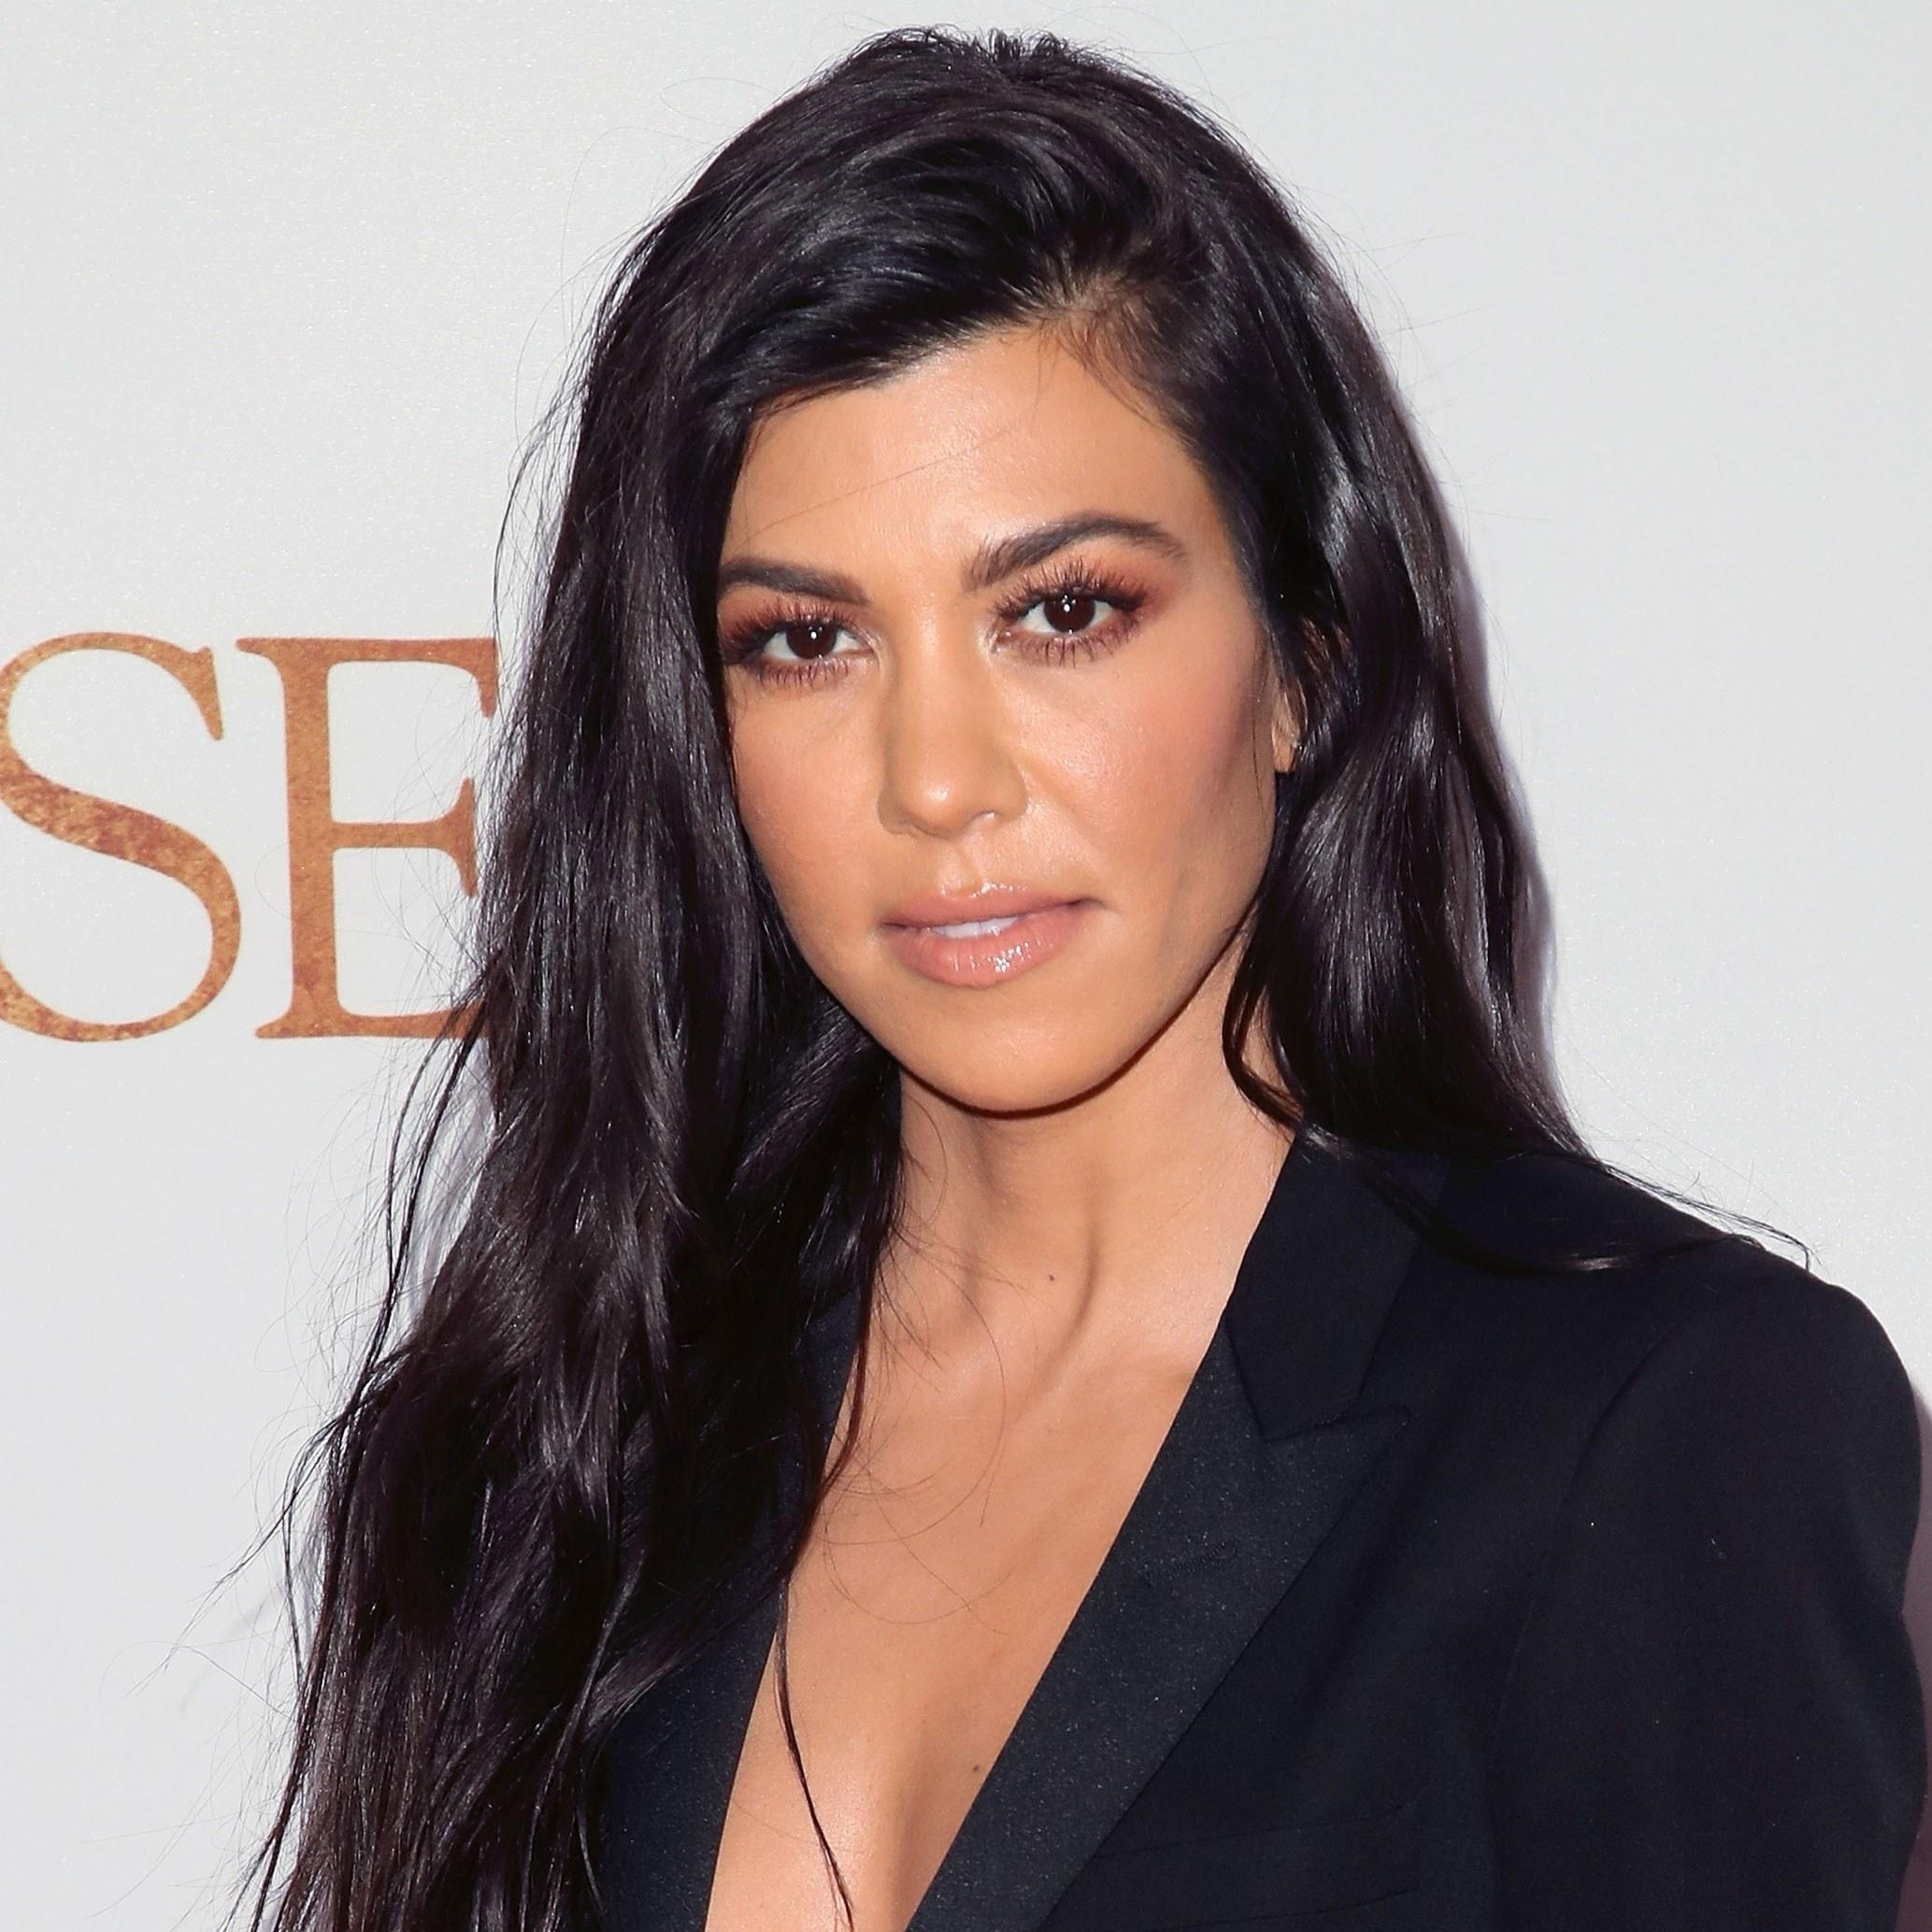 Forum on this topic: The 9 Ingredients Kourtney Kardashian Puts in , the-9-ingredients-kourtney-kardashian-puts-in/